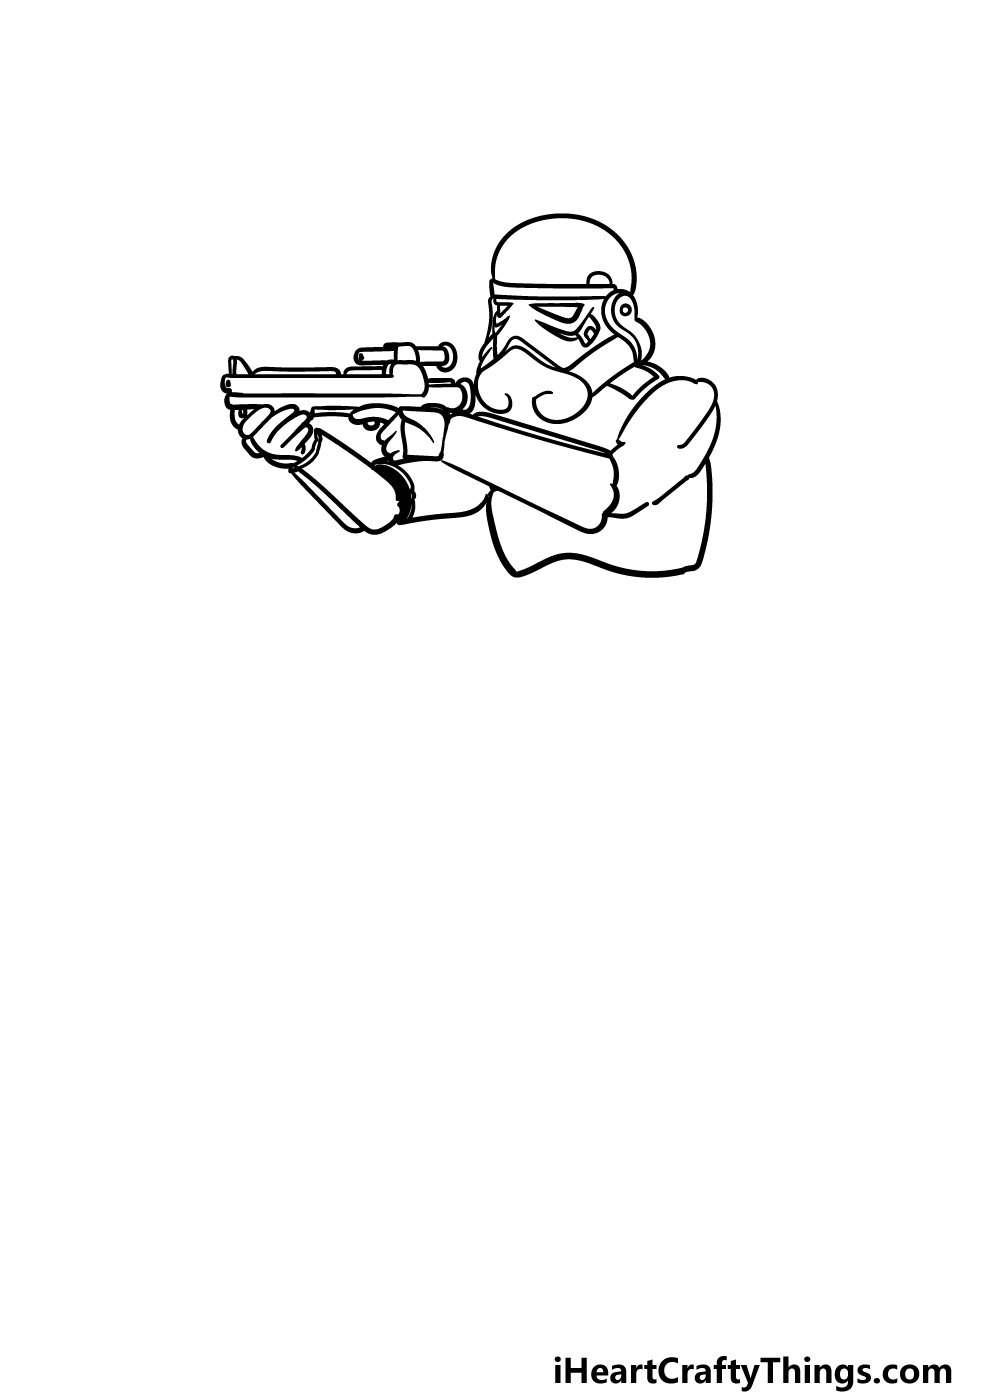 drawing a Stormtrooper step 3